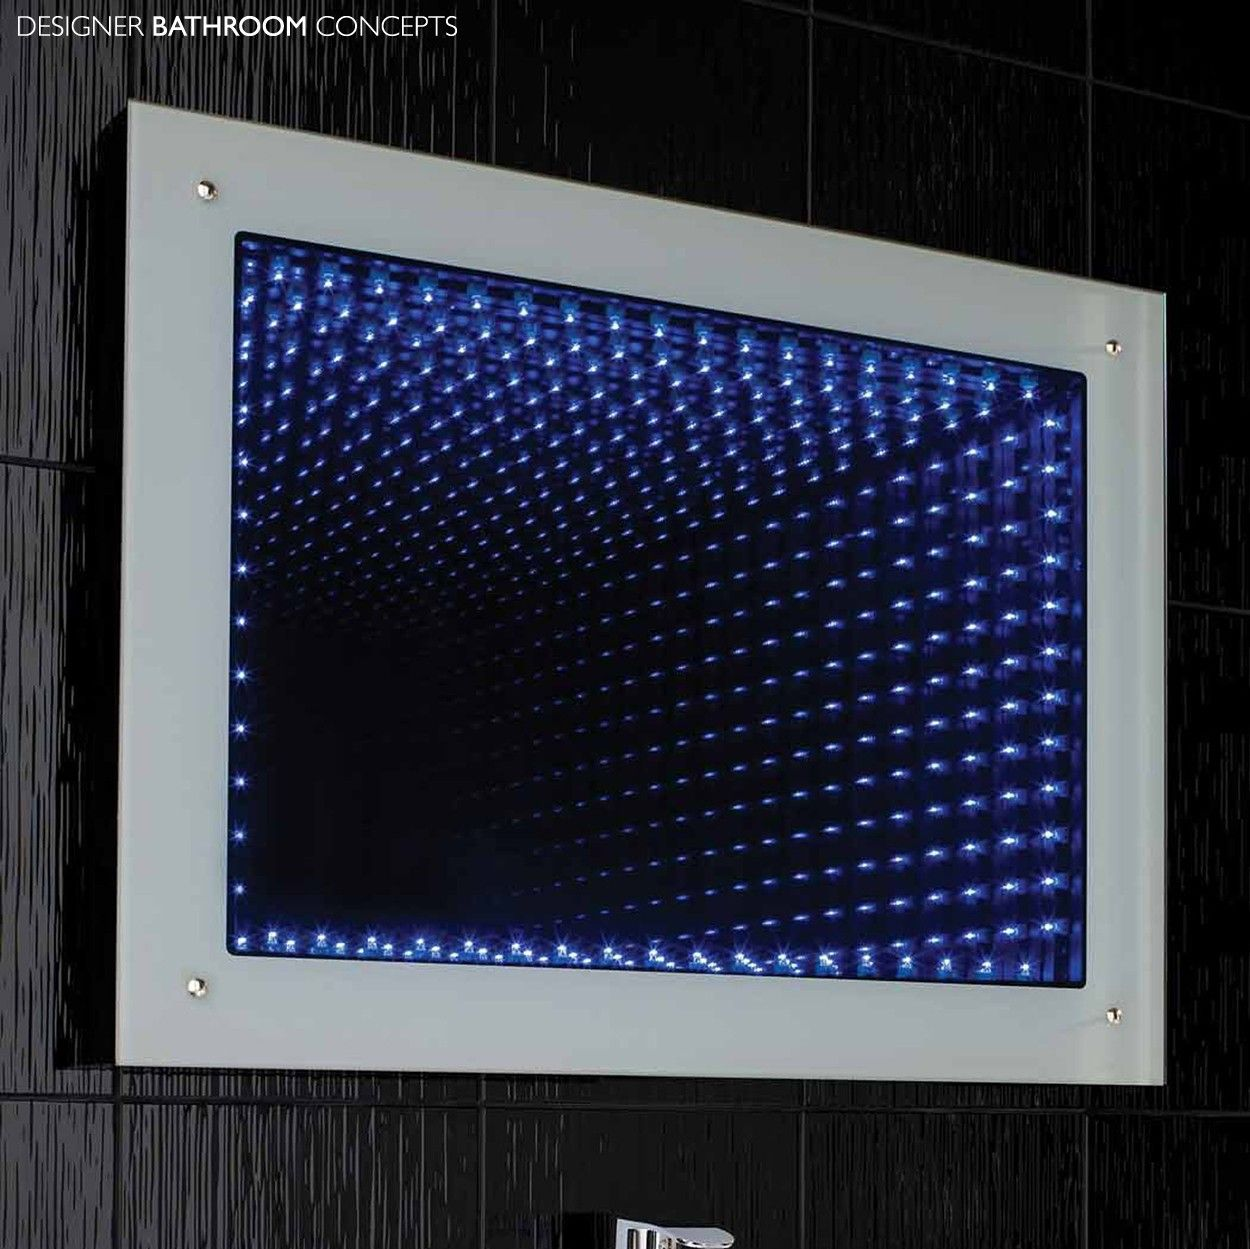 Bathroom Mirror Led lucio infinity led bathroom mirror - main image | berlin